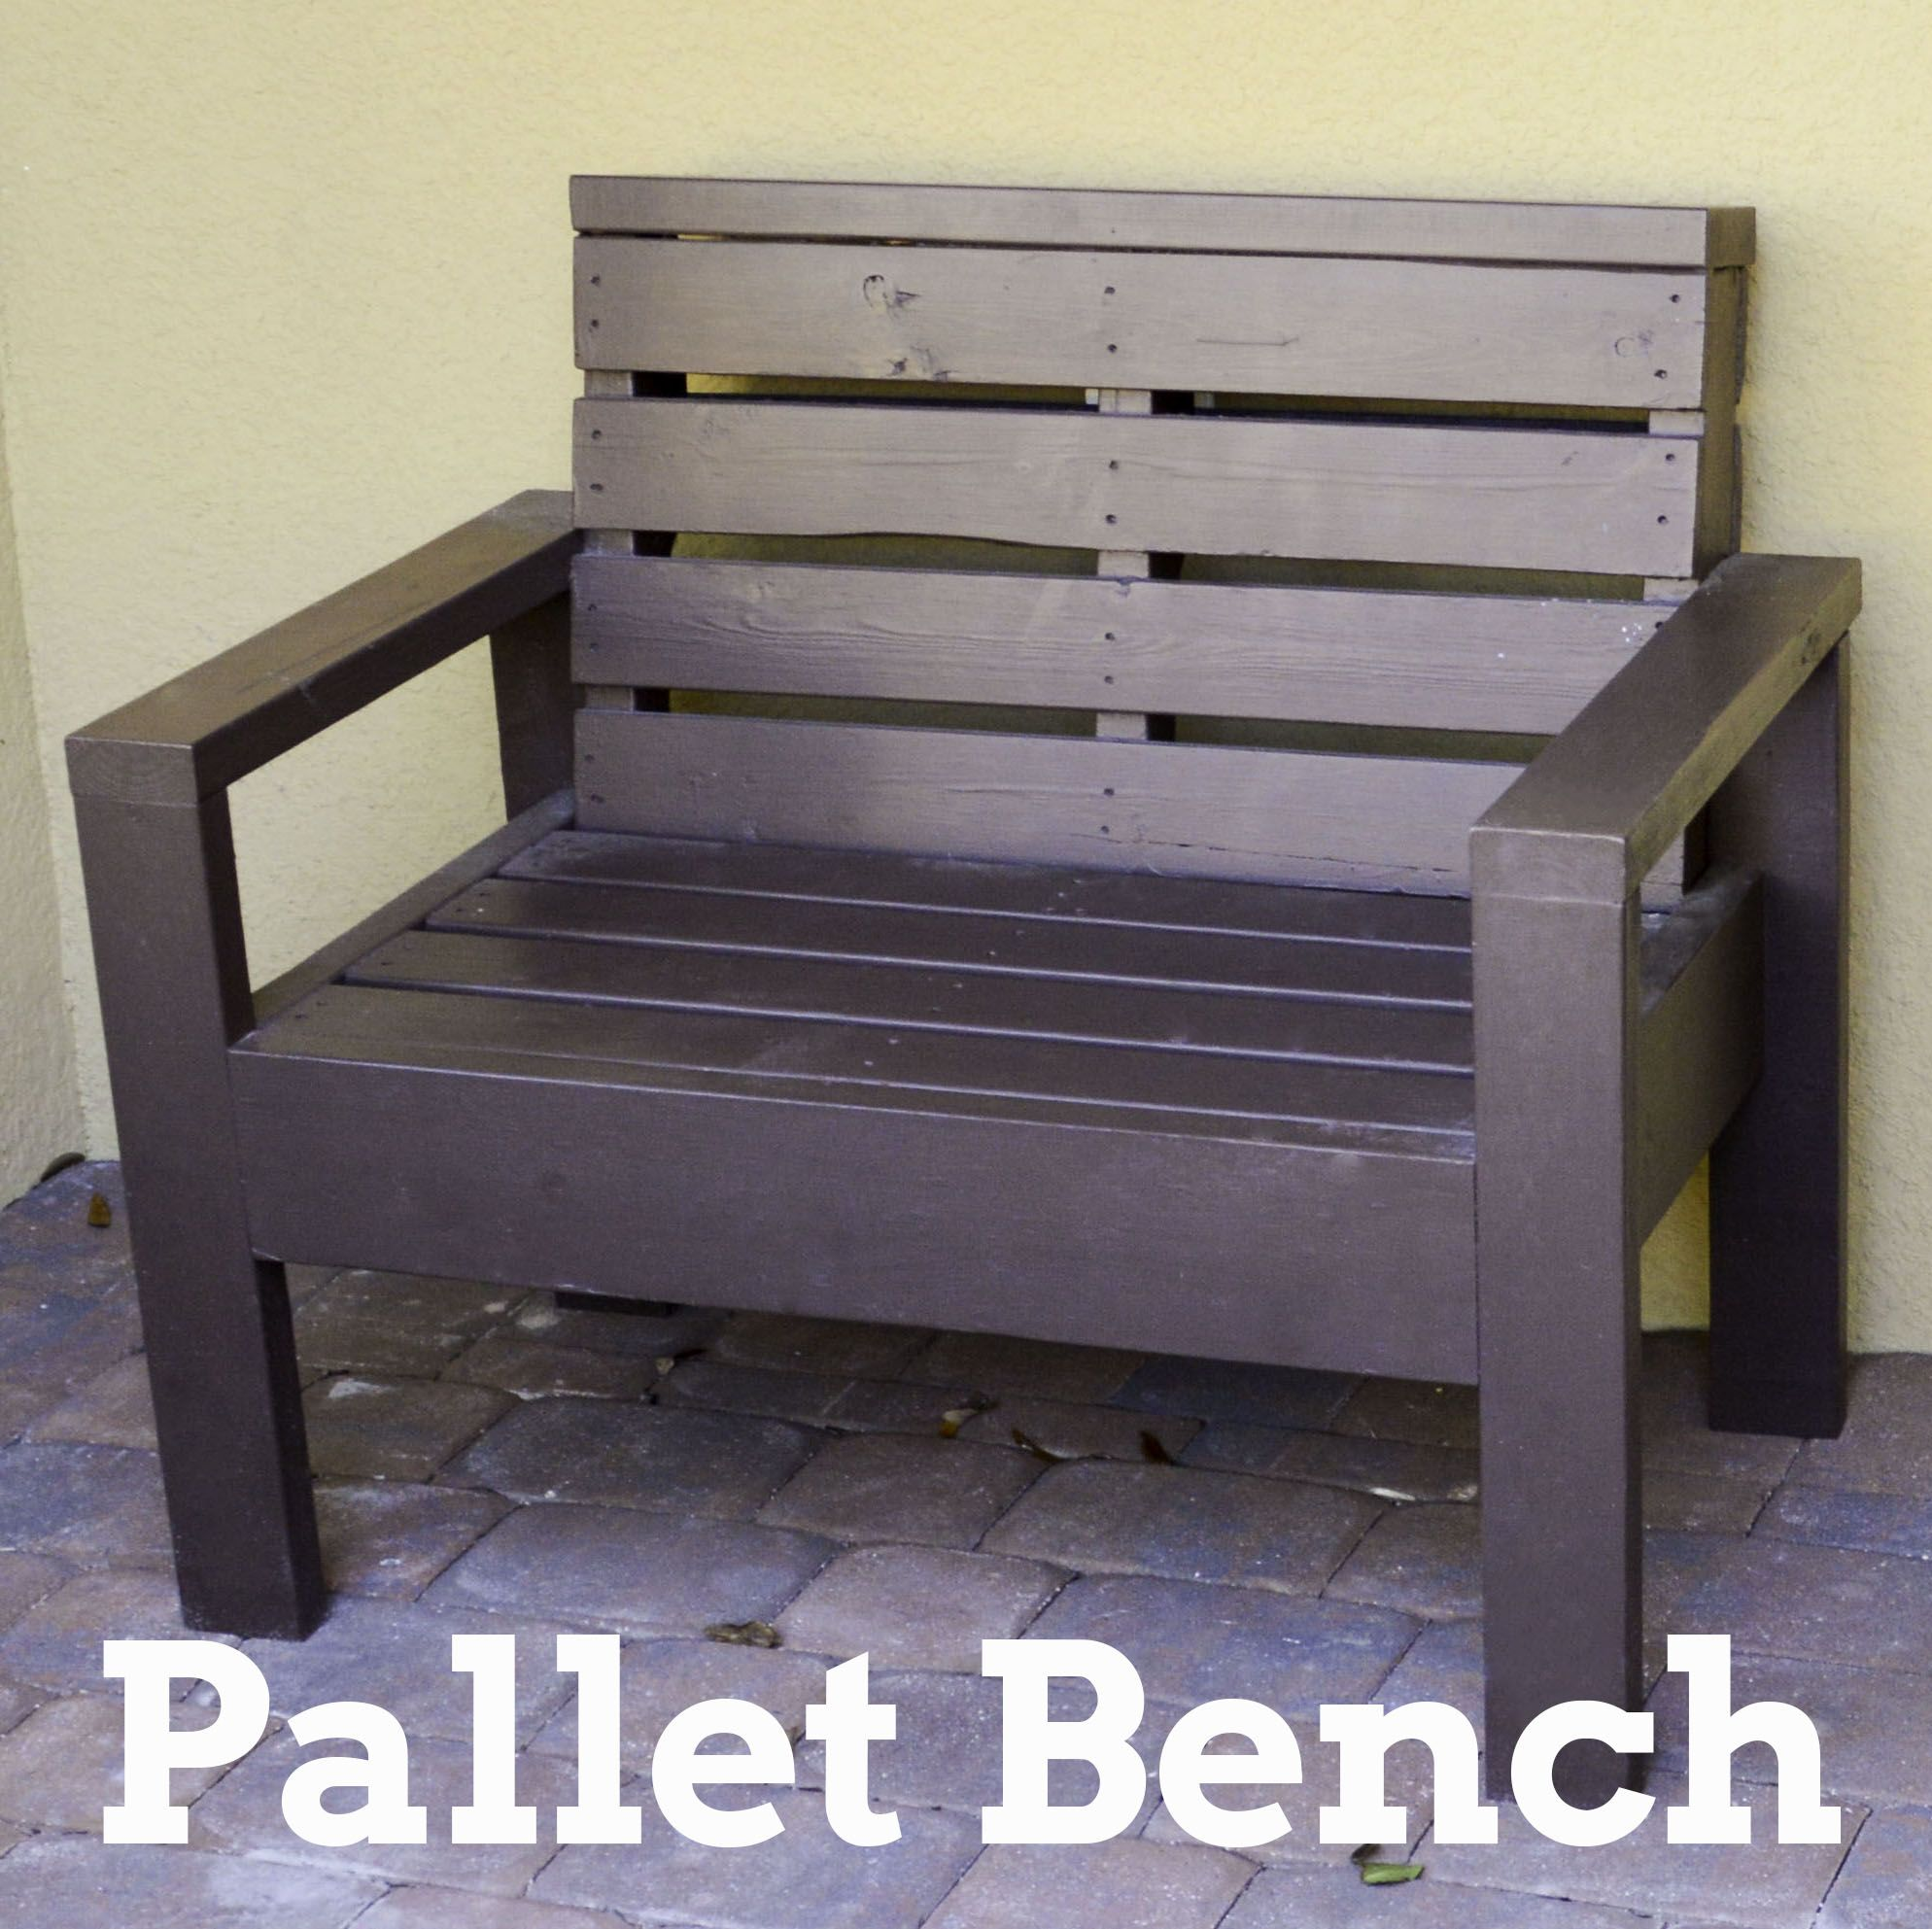 Diy Muebles Diy Pallet Bench My Diy Projects Pinterest Muebles